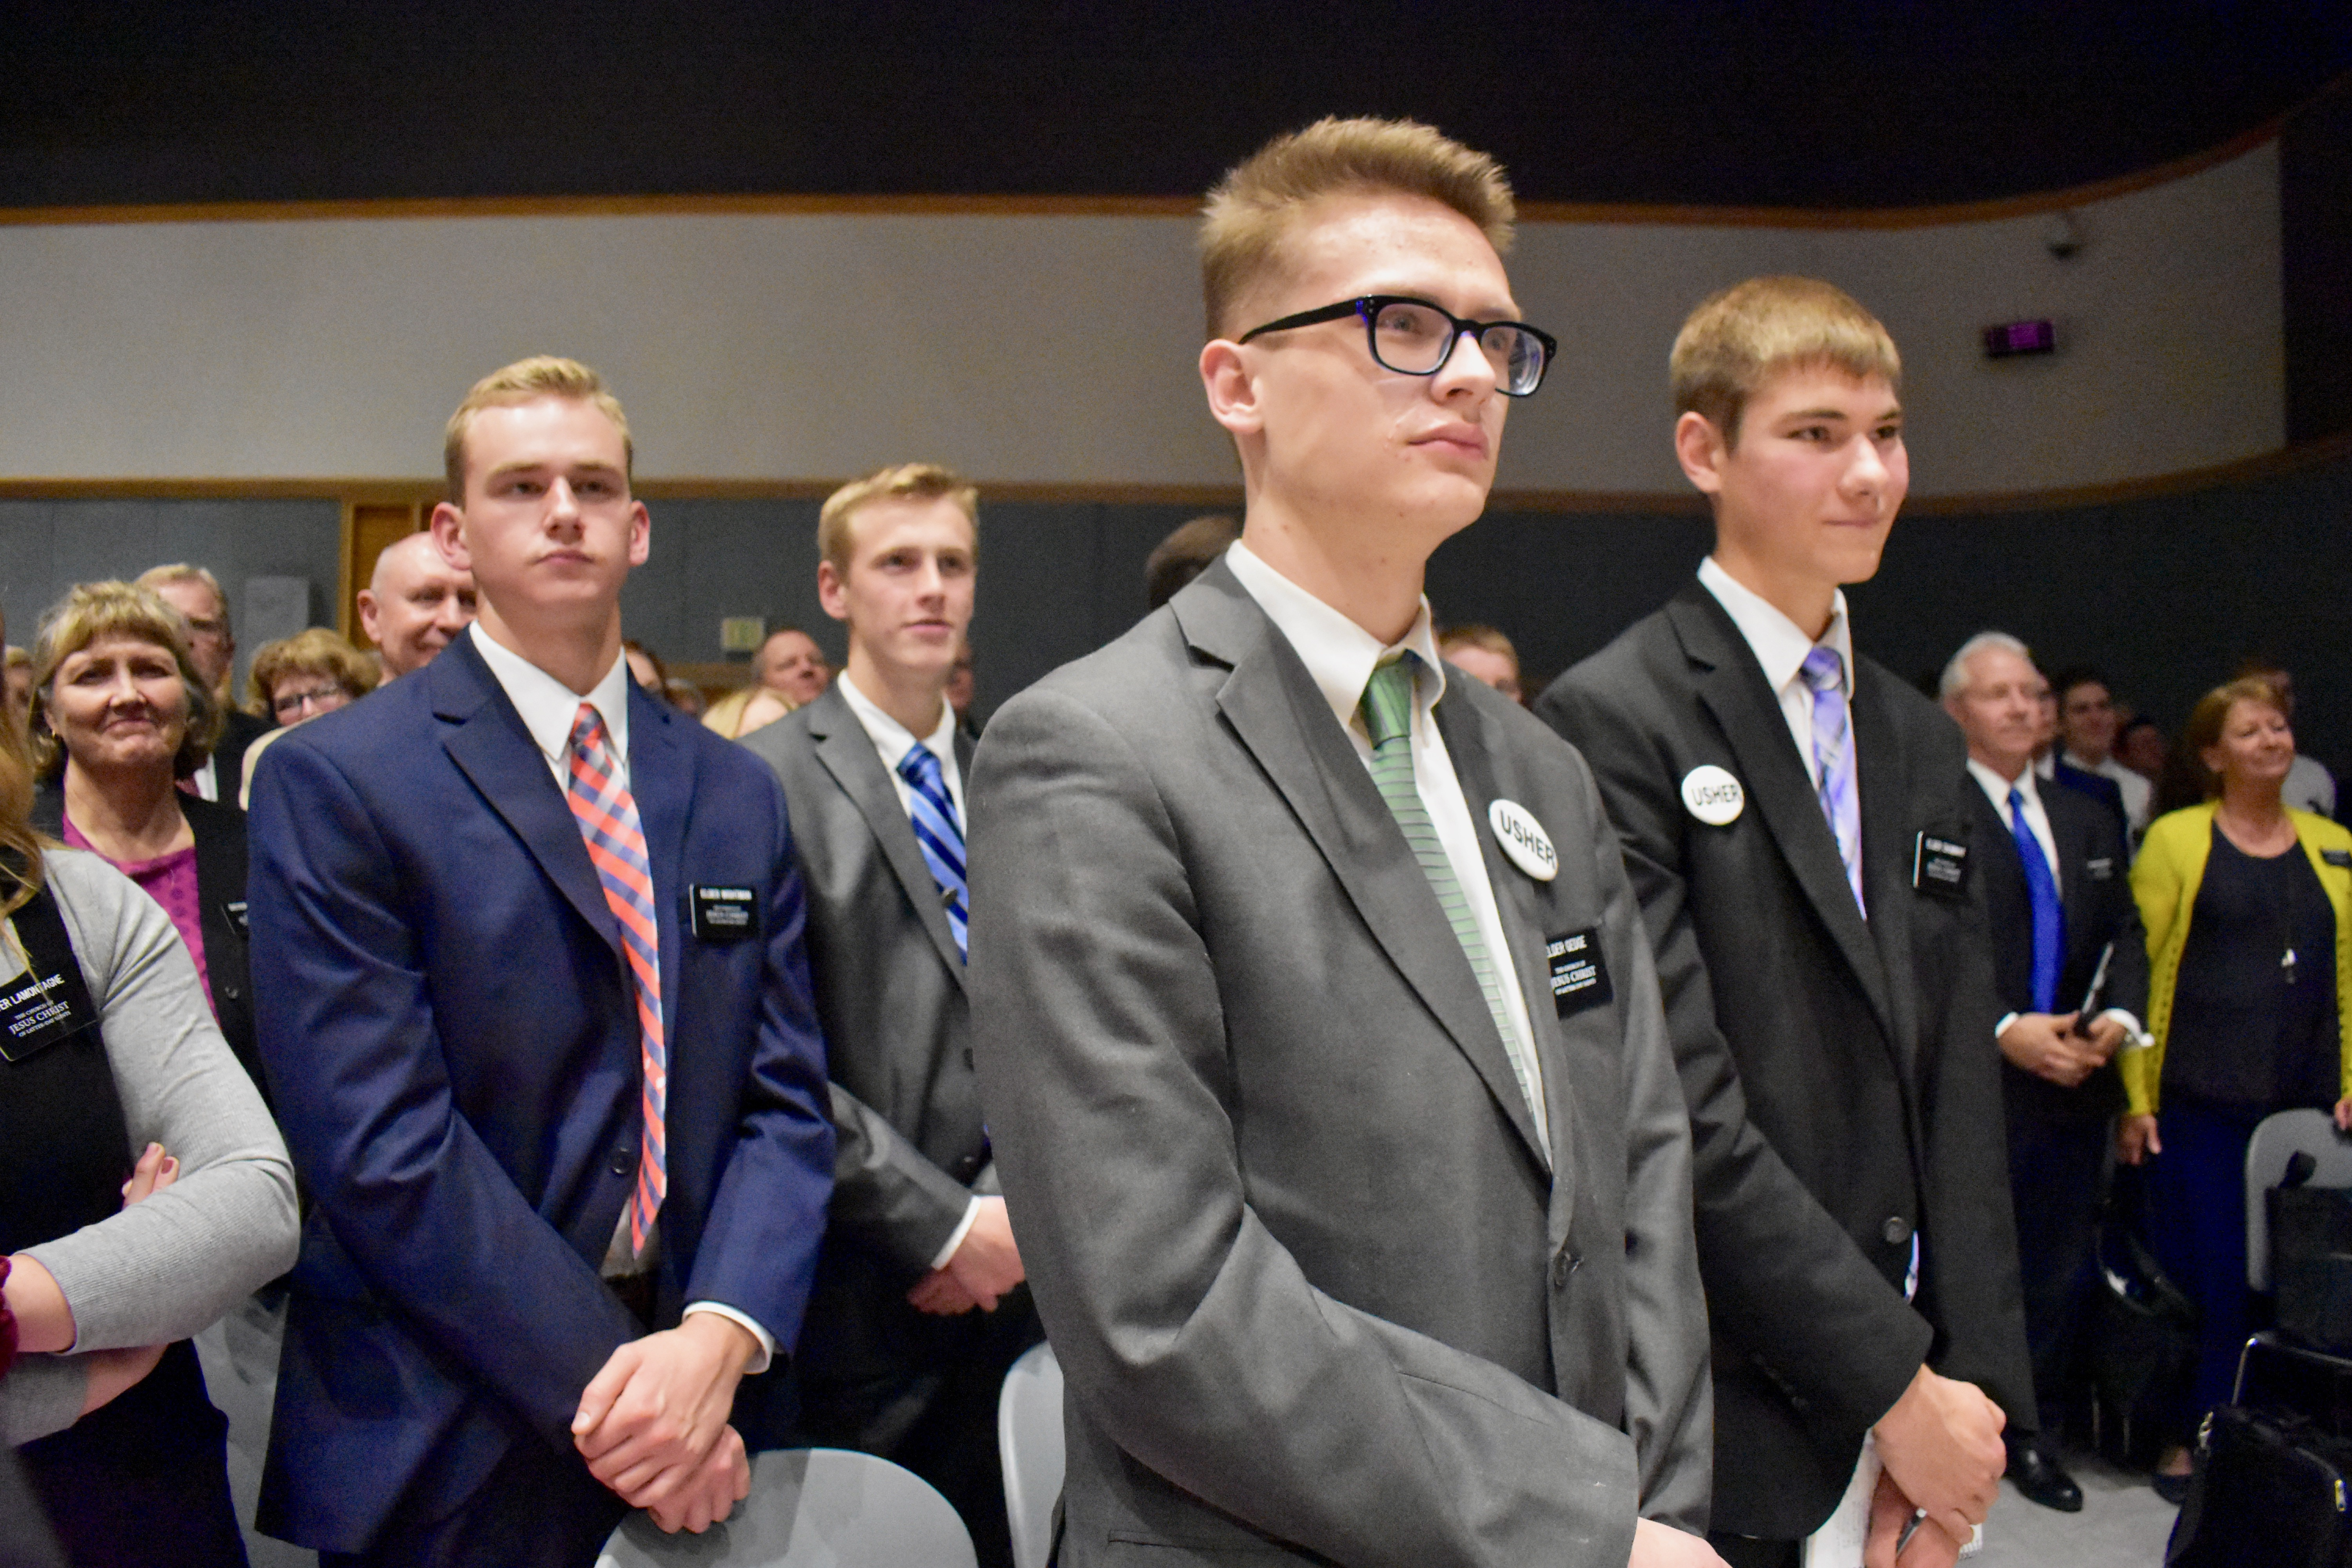 Missionaries acknowledge Elder Dieter F. Uchtdorf by standing as the apostle prepares to leave following a Nov. 5, 2019, devotional at the Provo Missionary Training Center.